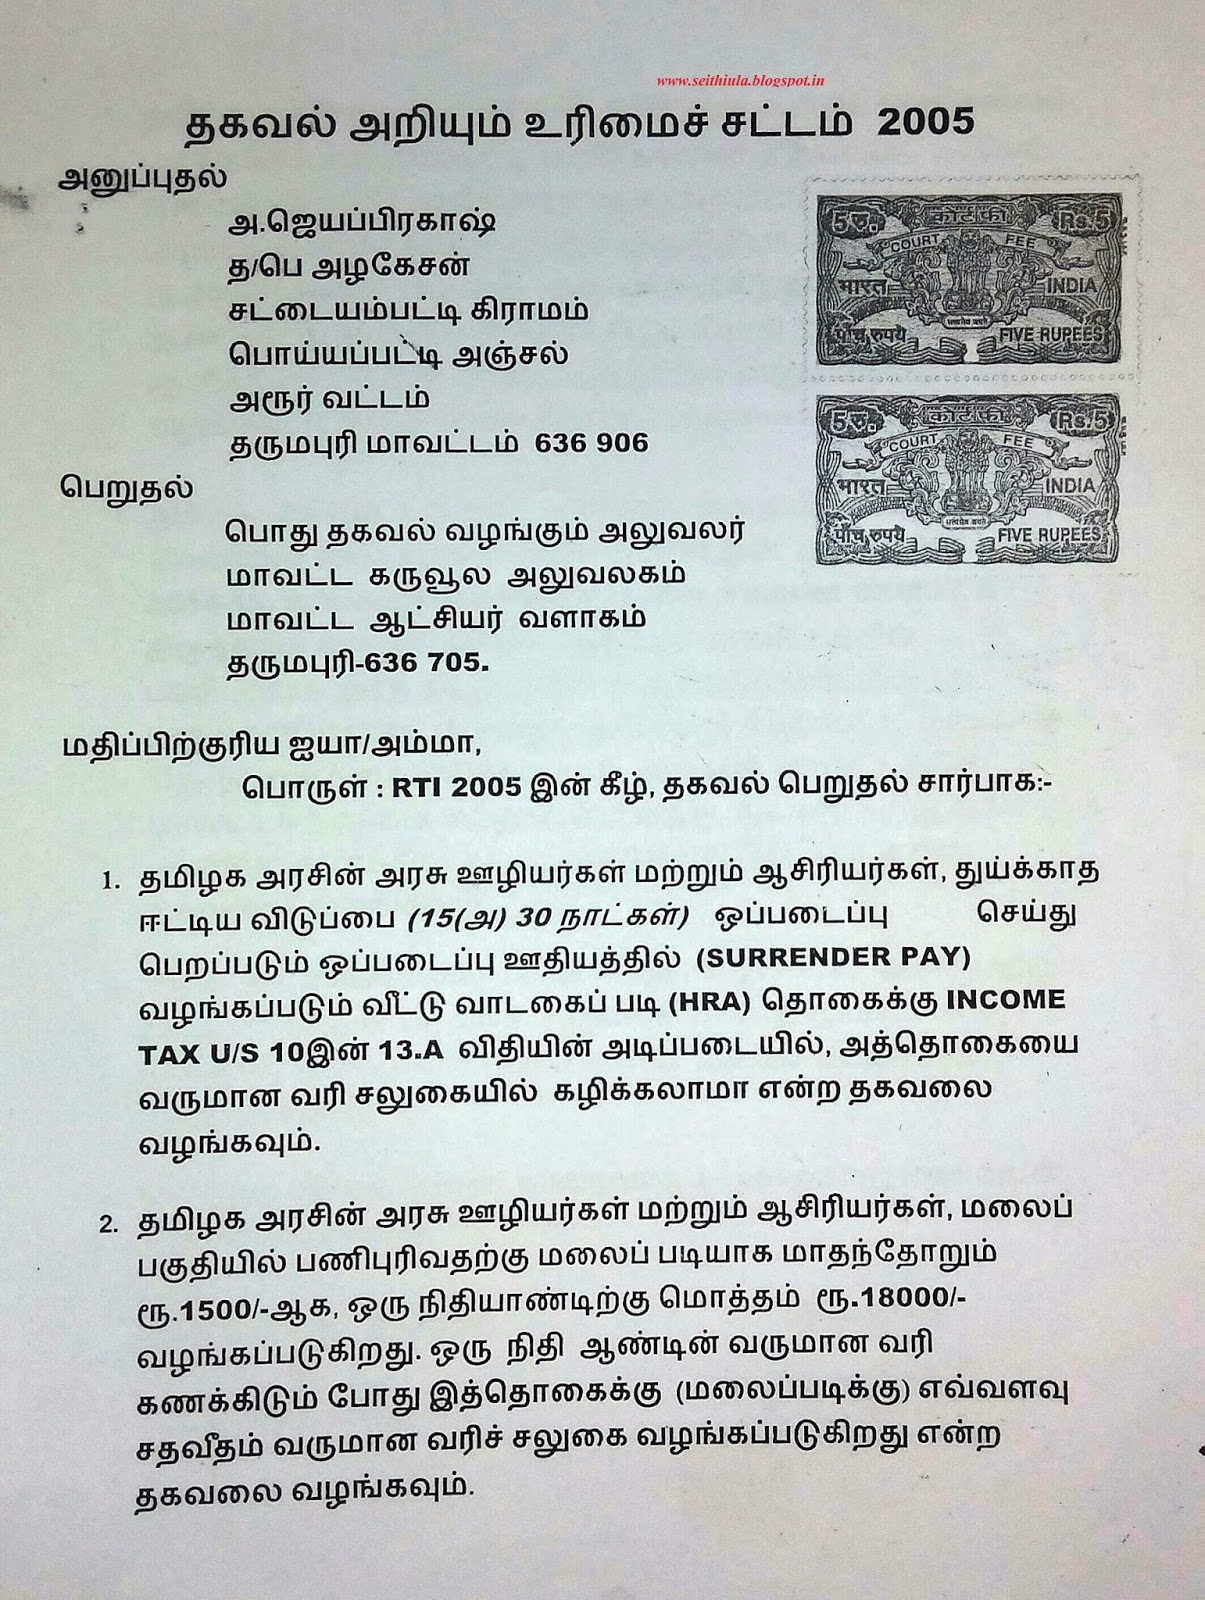 kadan pathiram in tamil pdf